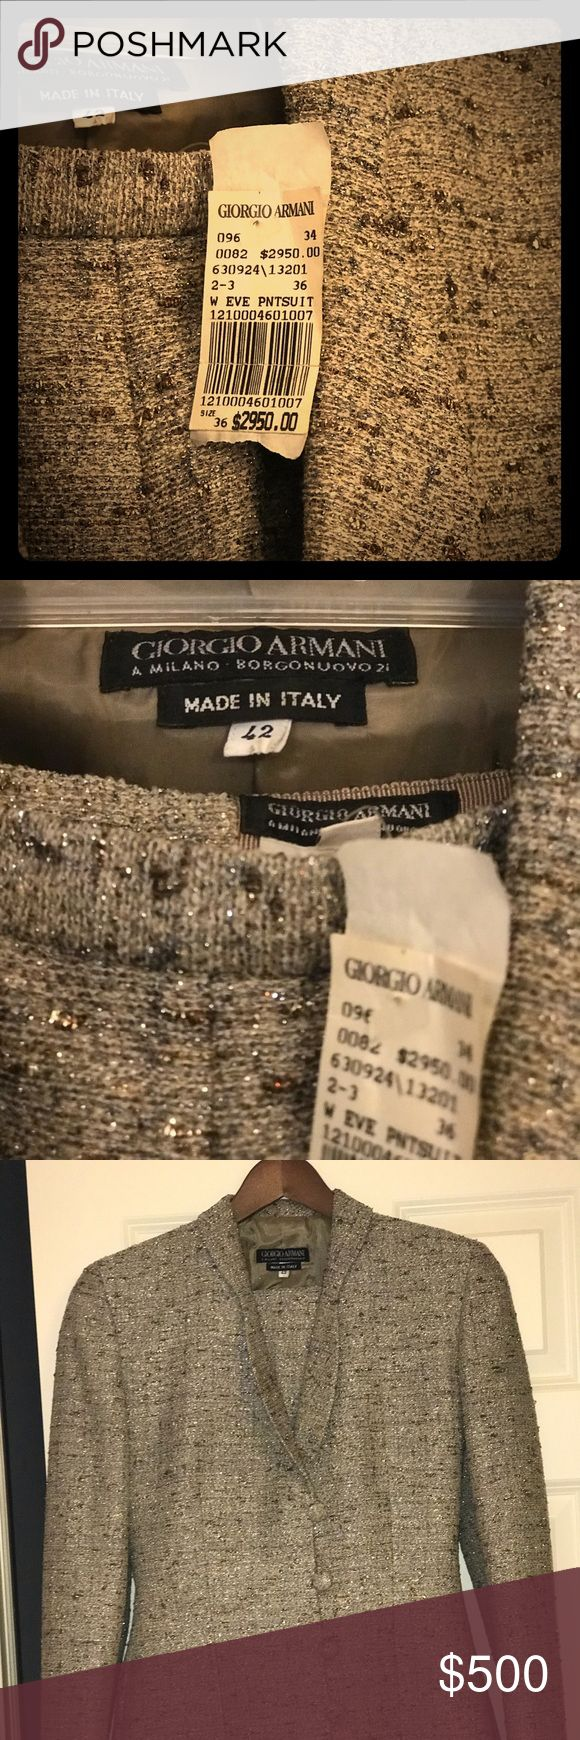 Authentic Giorgio Armani Women's Pants Suit Beautiful fabric! A sophisticated look that will give you complaints. The fabric blends are amazing neutral, gold, bronze and sliver colors. A few areas of discoloration worn on fabric. Recommend keeping suit in a garment bag. Giorgio Armani Jackets & Coats Blazers